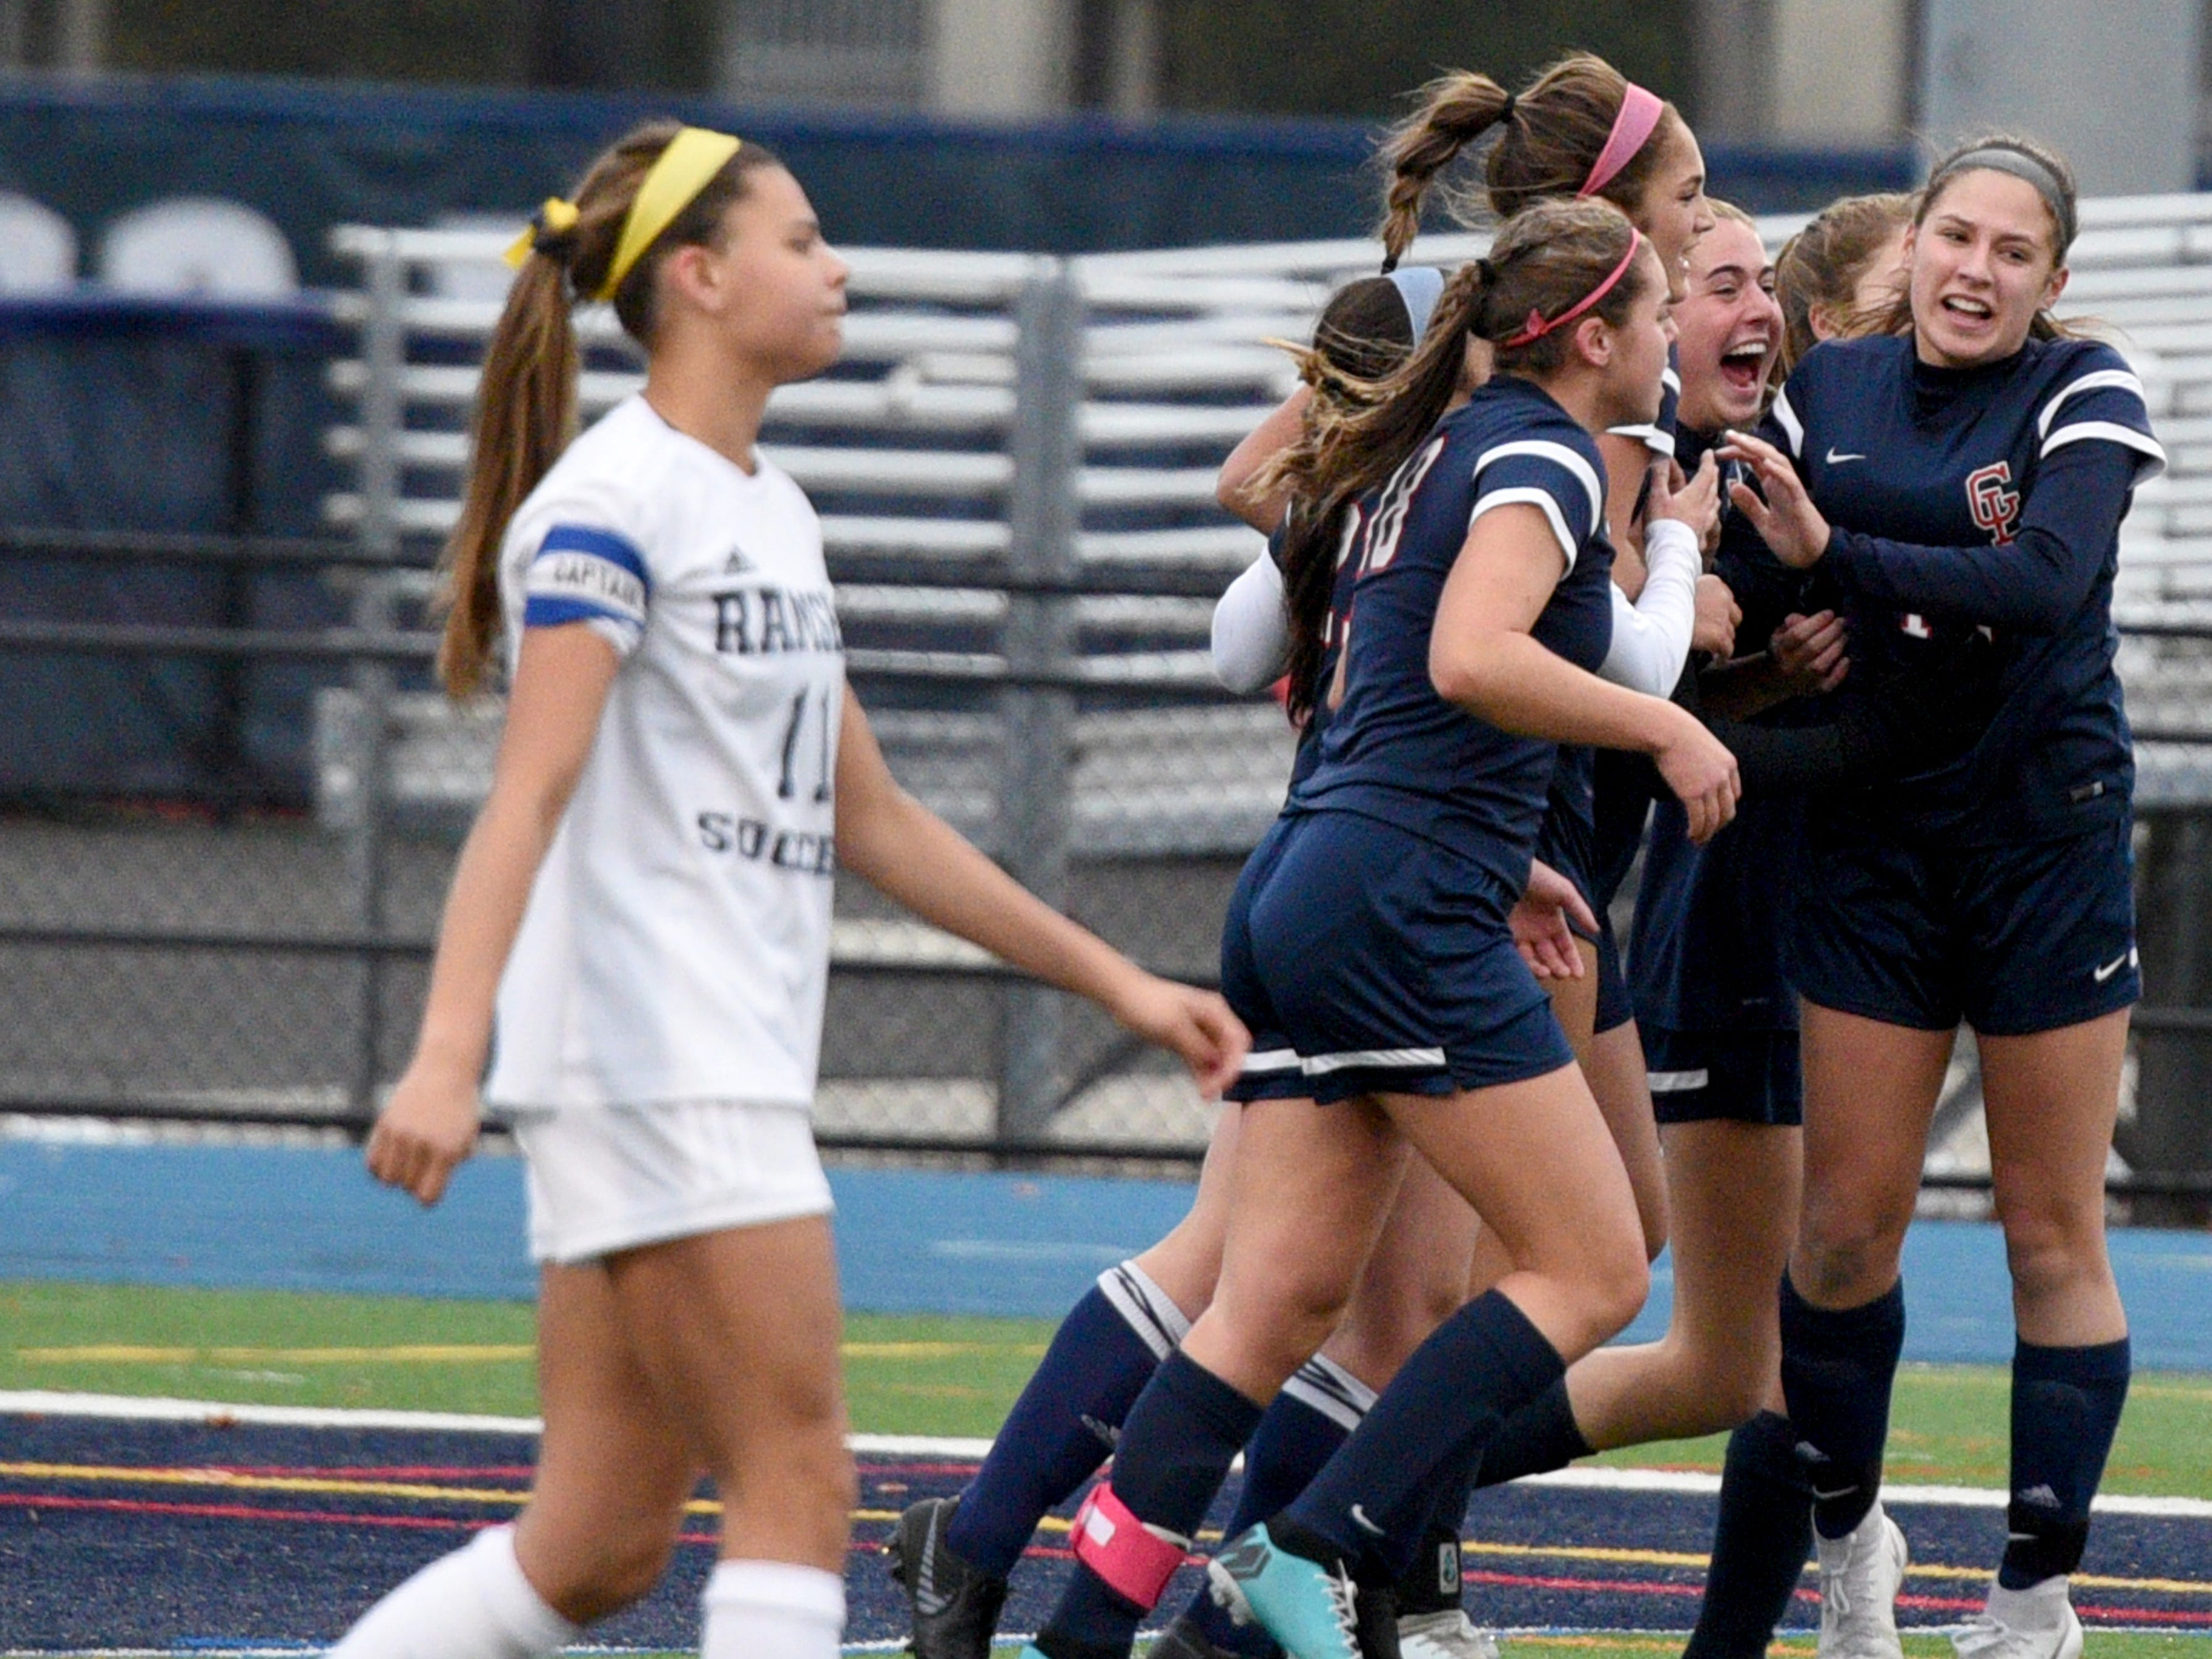 Governor Livingston celebrates a goal during the first half against Ramsey in the Group II final on Sunday, Nov. 18, 2018 at Kean University.